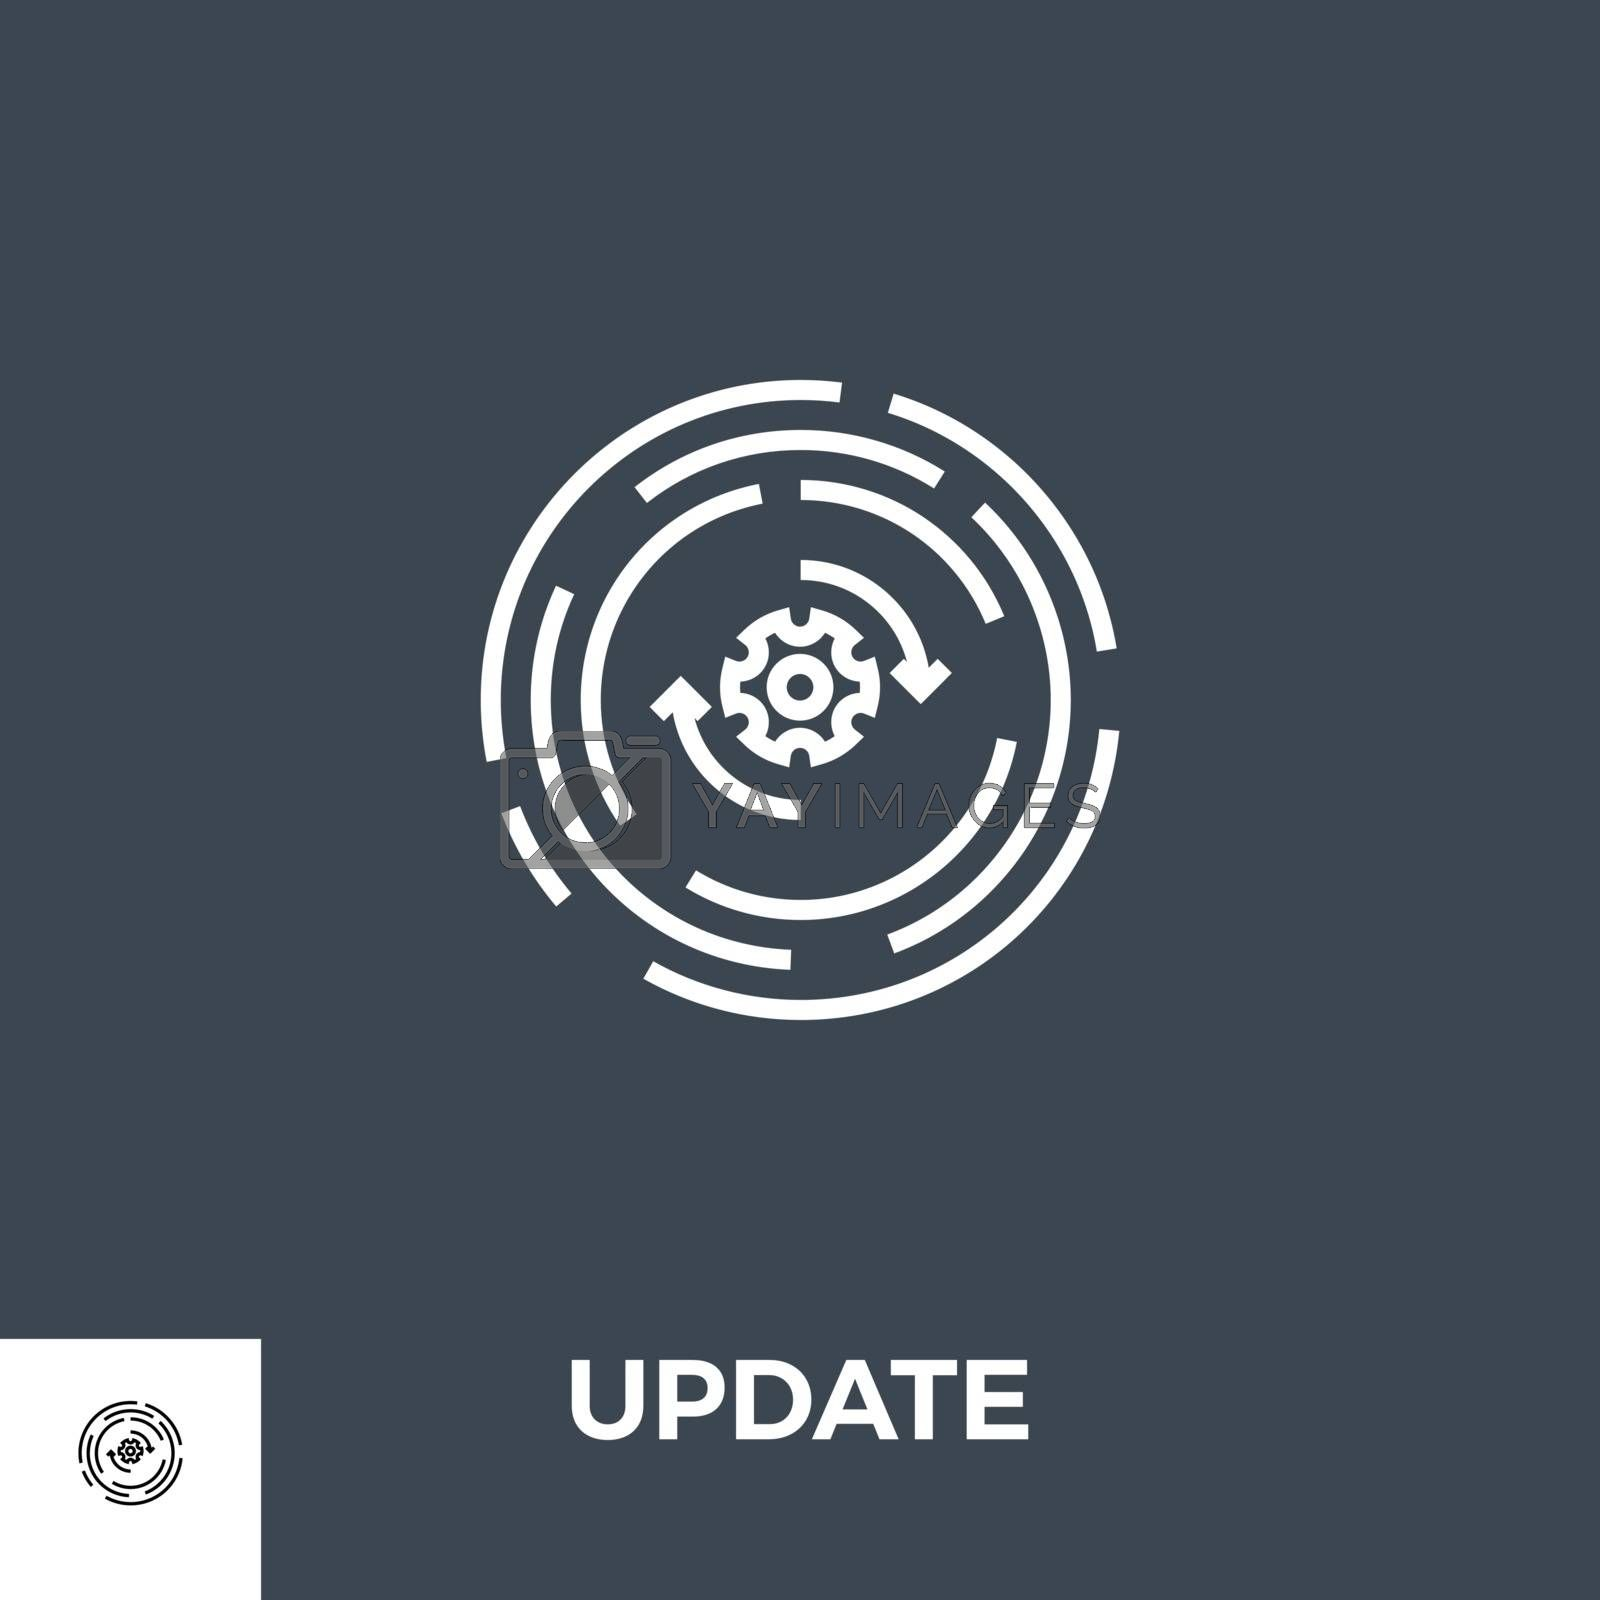 Update Related Vector Thin Line Icon. Isolated on Black Background. Vector Illustration.